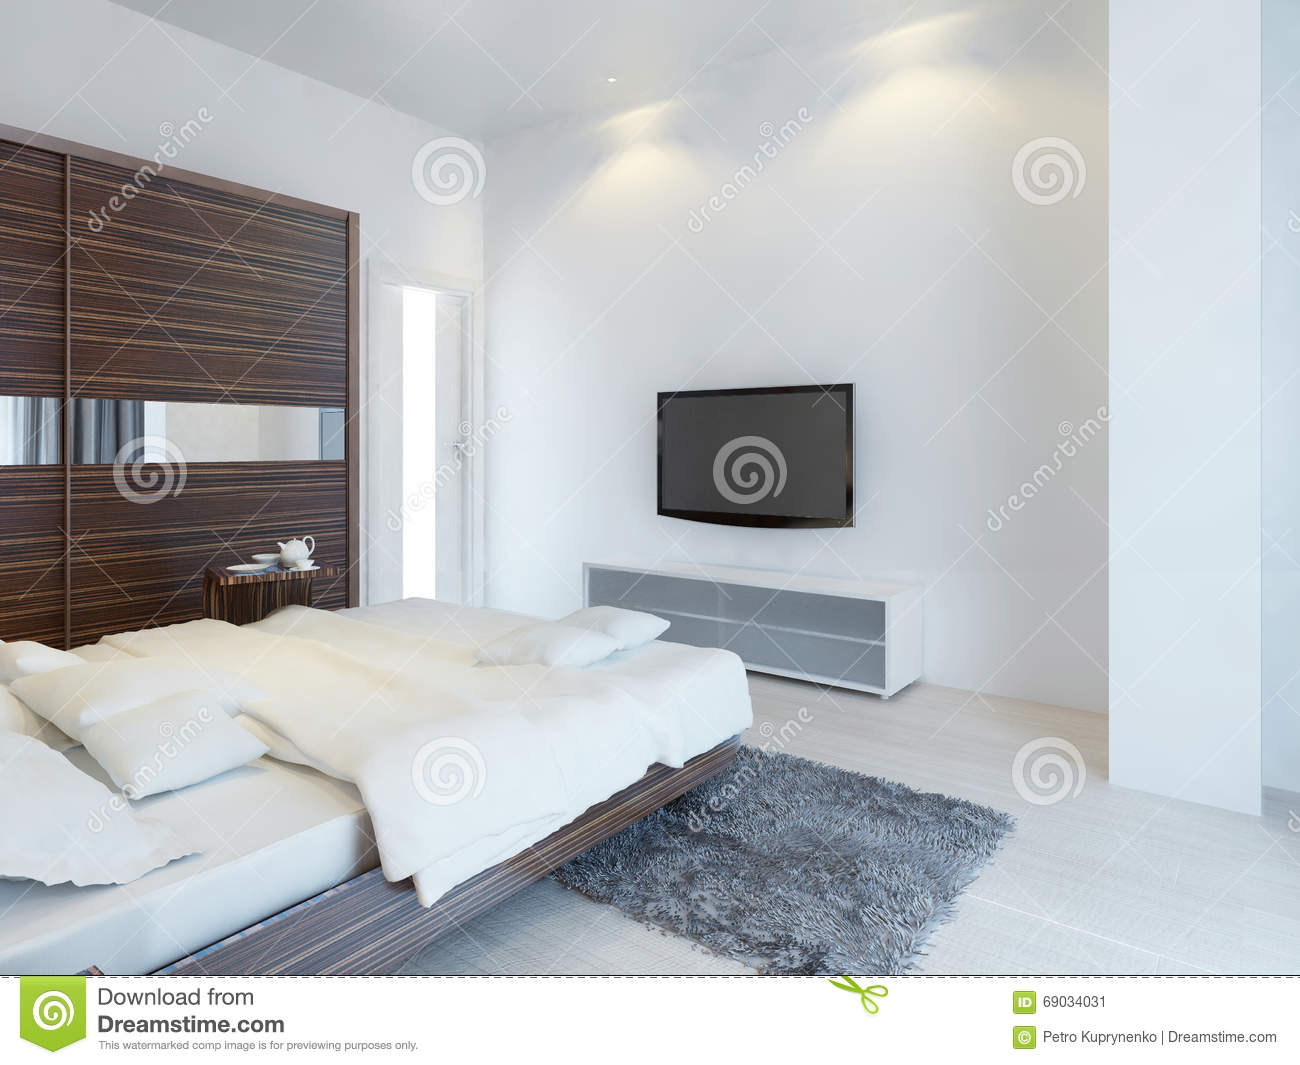 chambre coucher avec la tv et une console de media illustration stock image 69034031. Black Bedroom Furniture Sets. Home Design Ideas